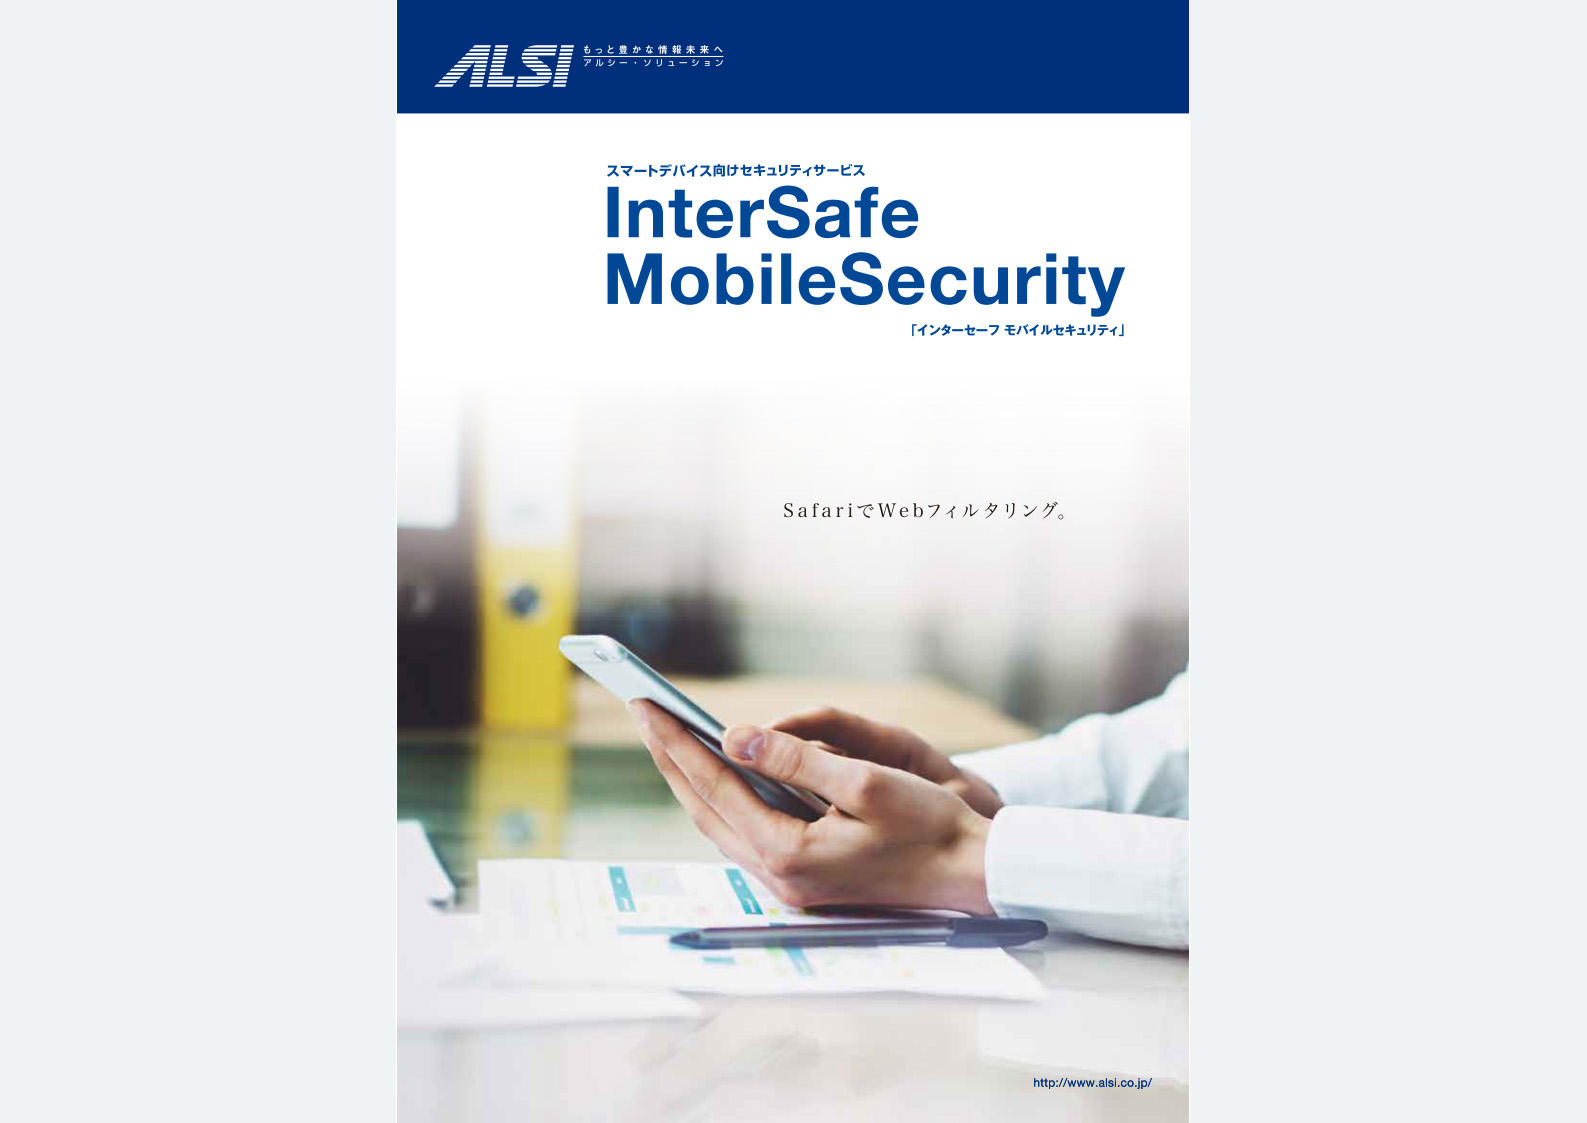 InterSafe MobileSecurity / Lite カタログ(A4サイズ印刷用)